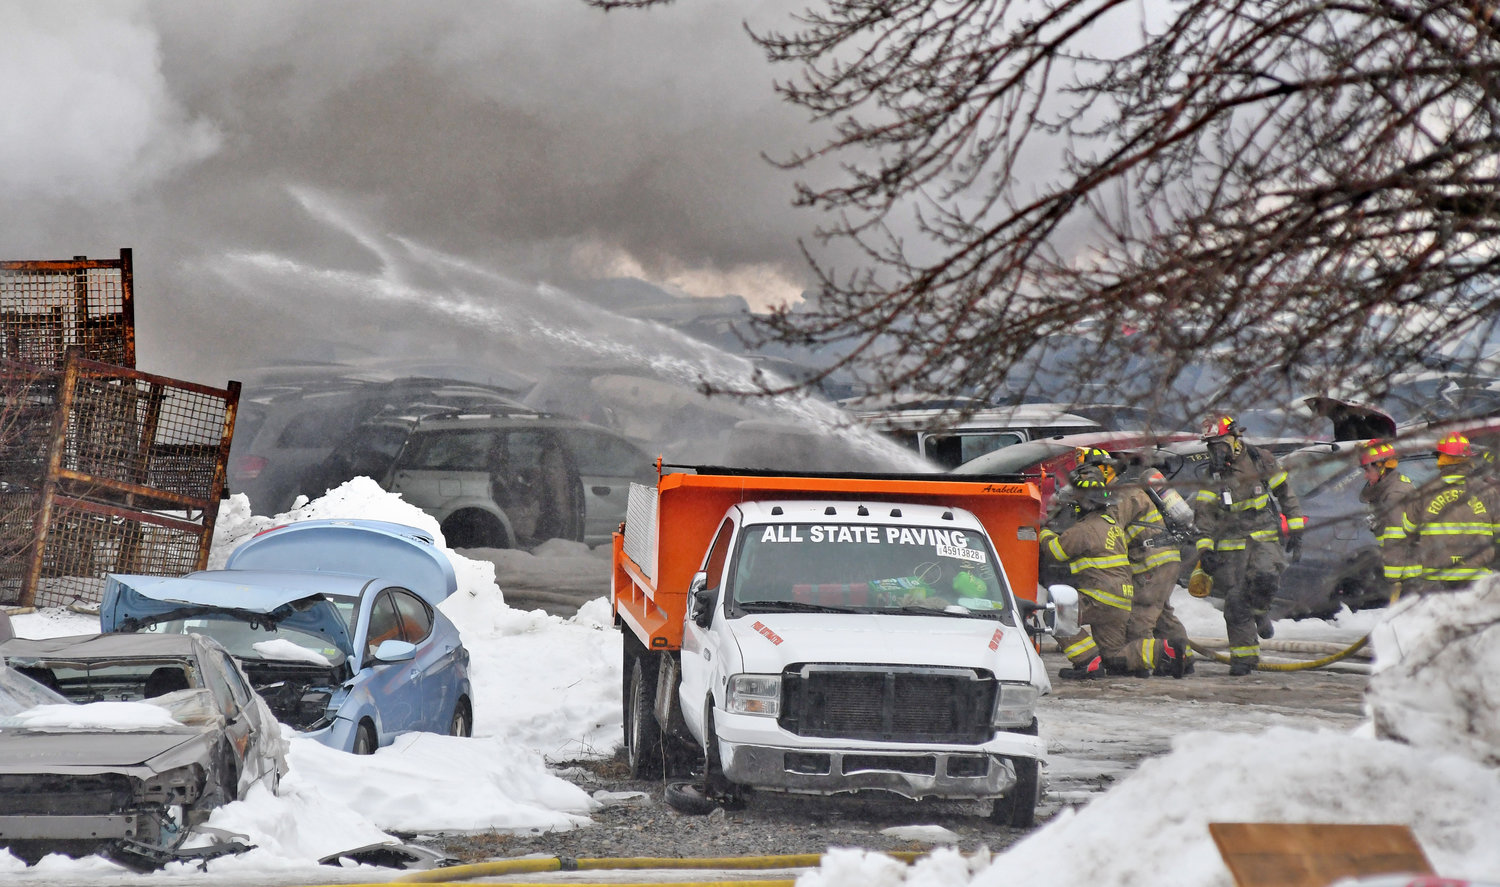 DEBRIS — Old, battered cars litter the scene of a large fire at Tolpa's Auto Parts on French Road in Steuben Wednesday afternoon. Forestport firefighters were some of several volunteer agencies dispatched to the scene. (Sentinel photo by John Clifford)